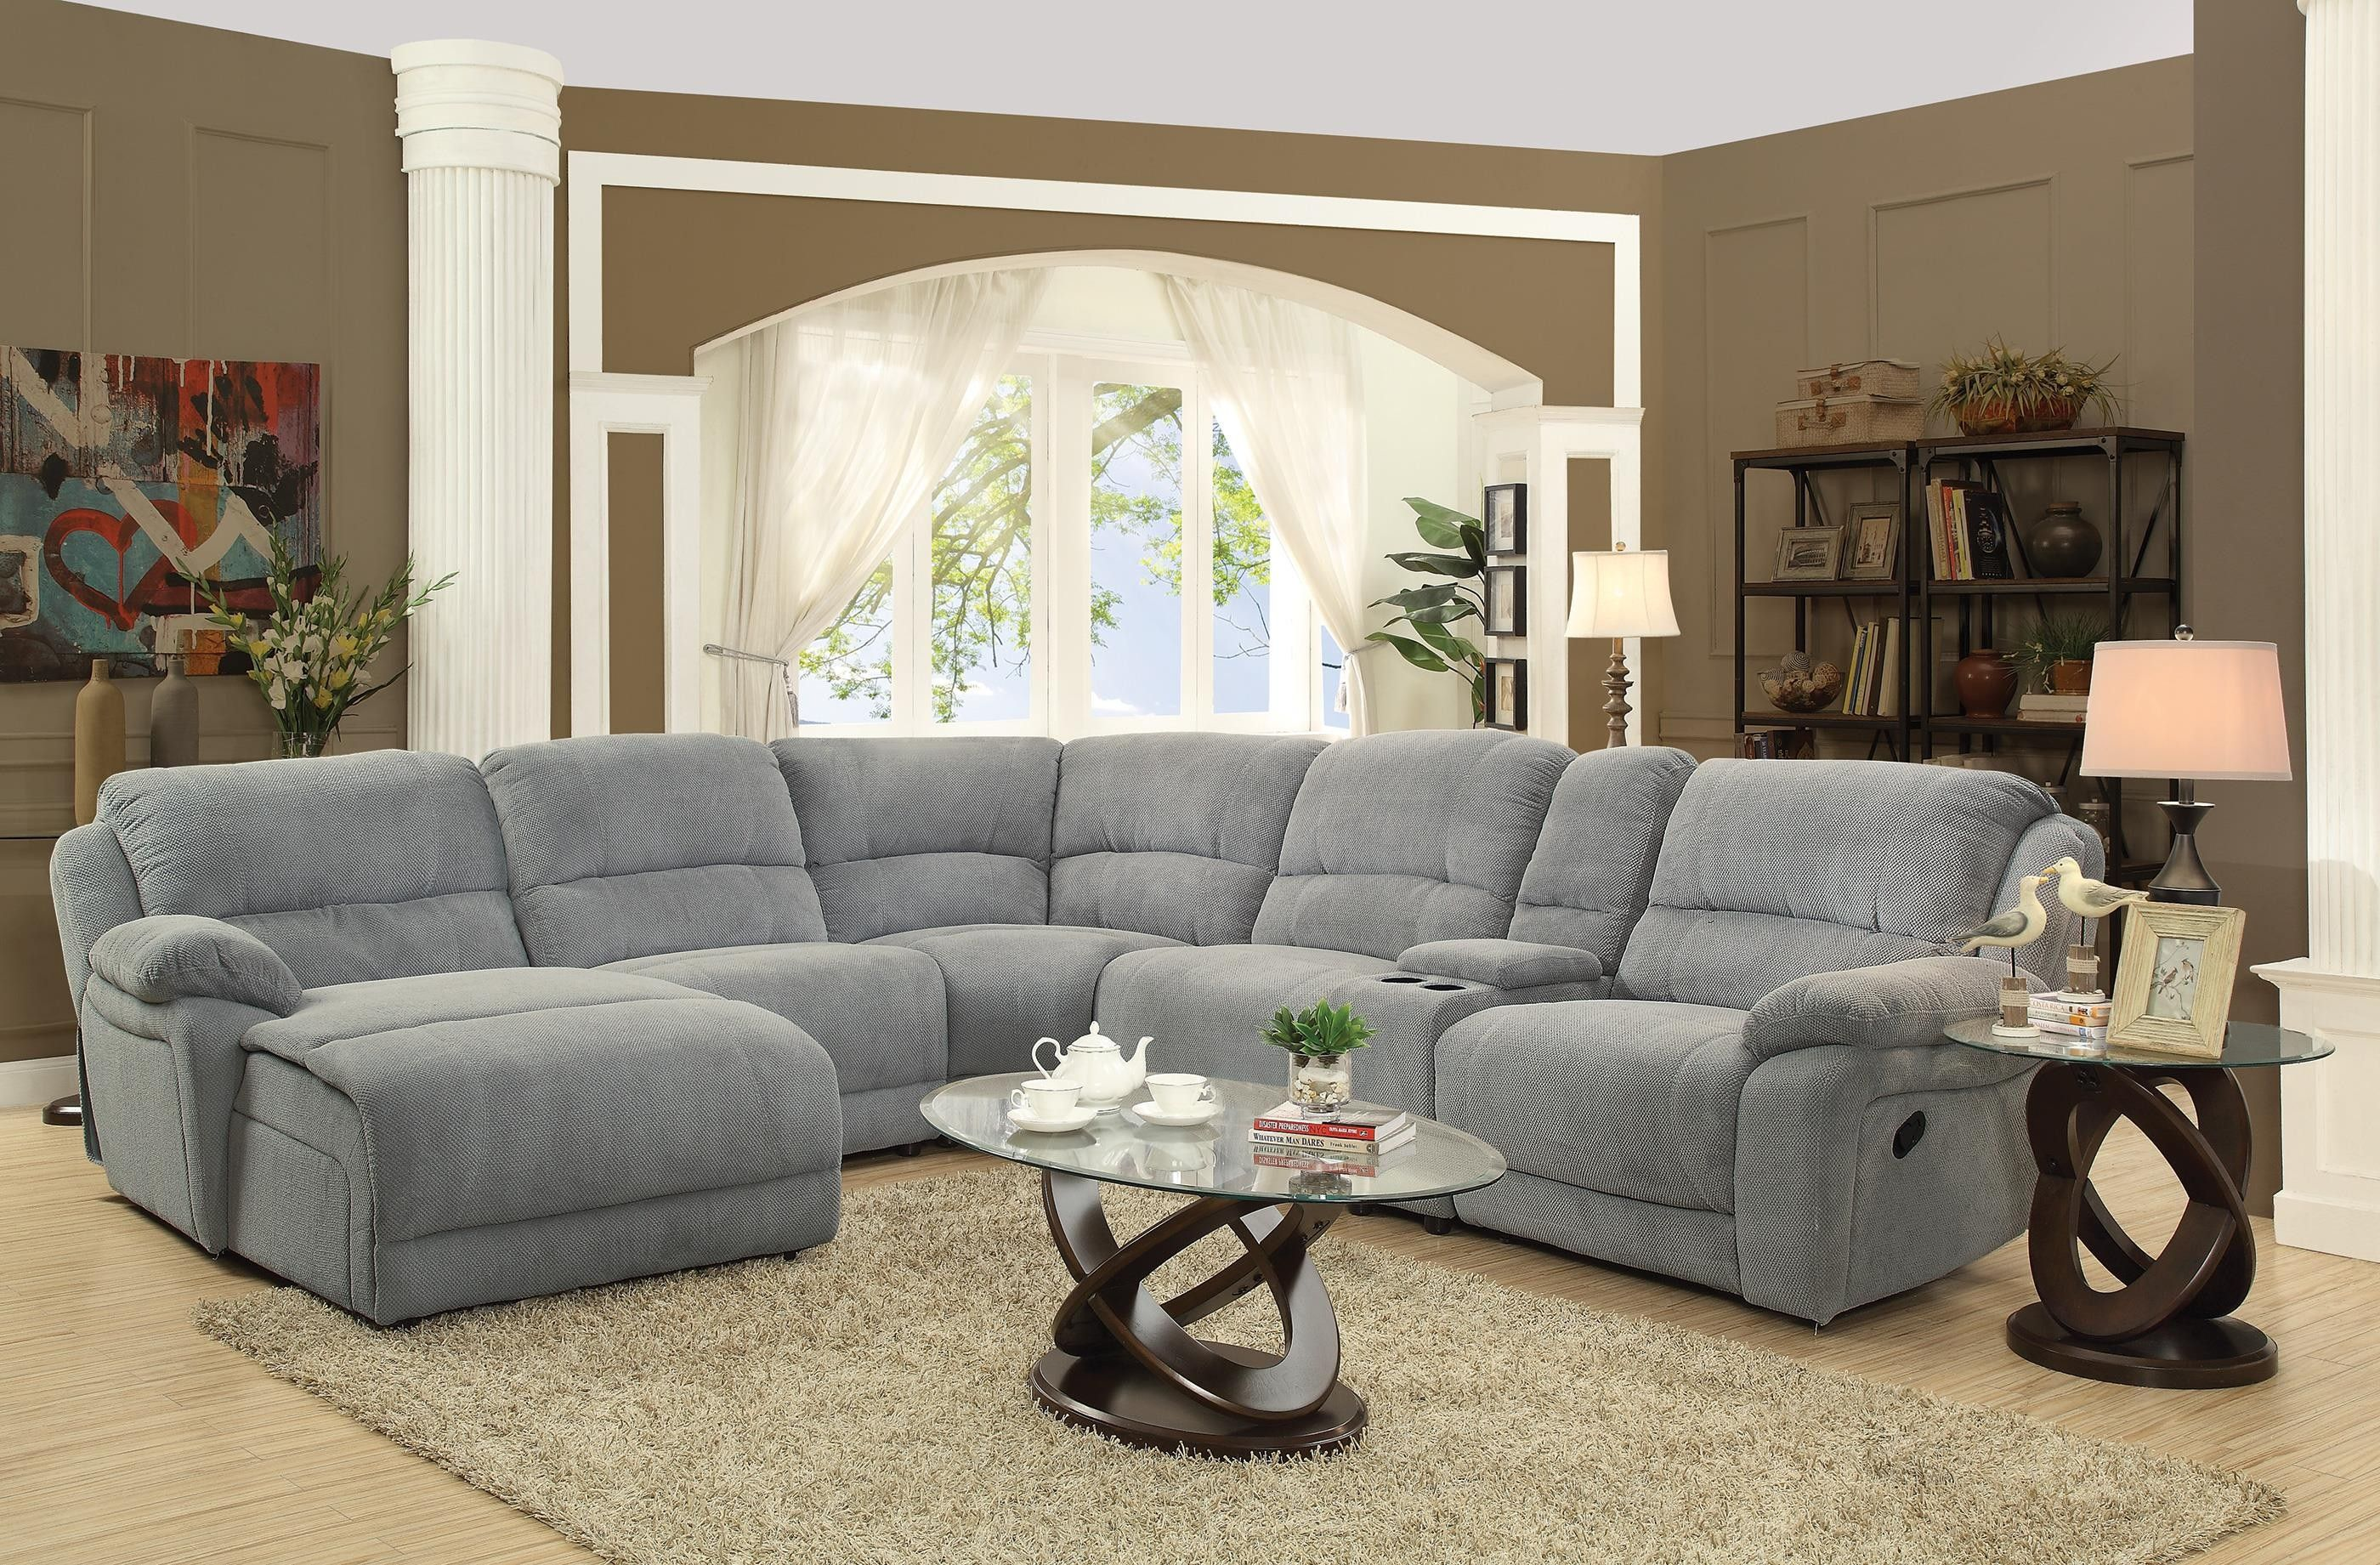 Coaster 600017 Mackenzie Silver Tone 6 Piece Reclining Sectional